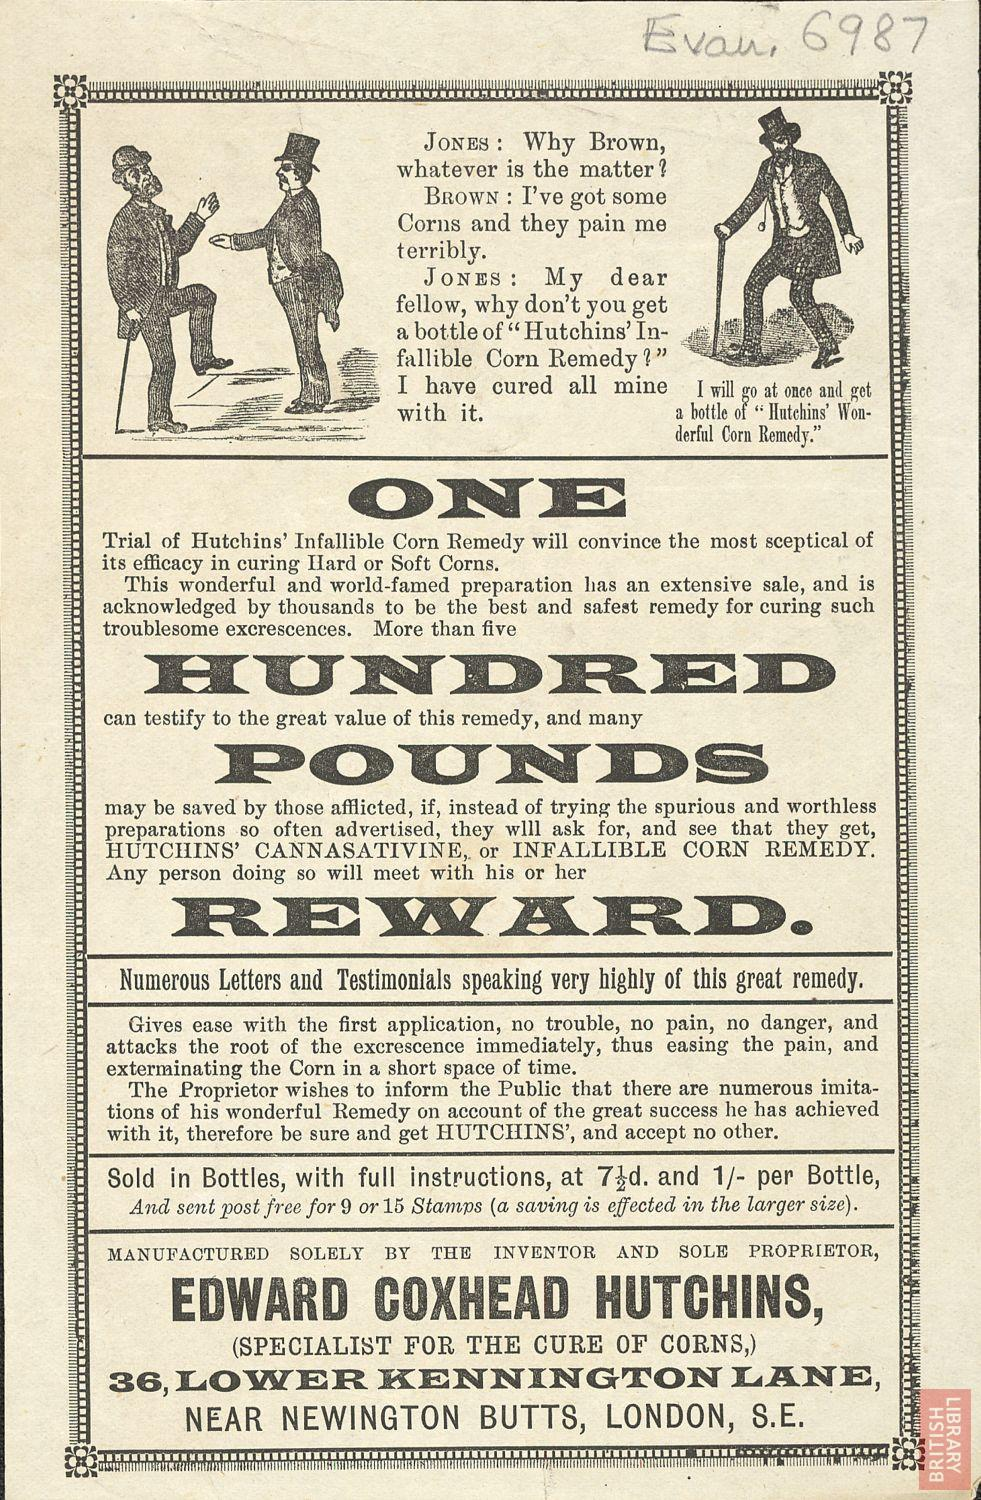 Advertisement for Hutchins Infallible Corn Remedy